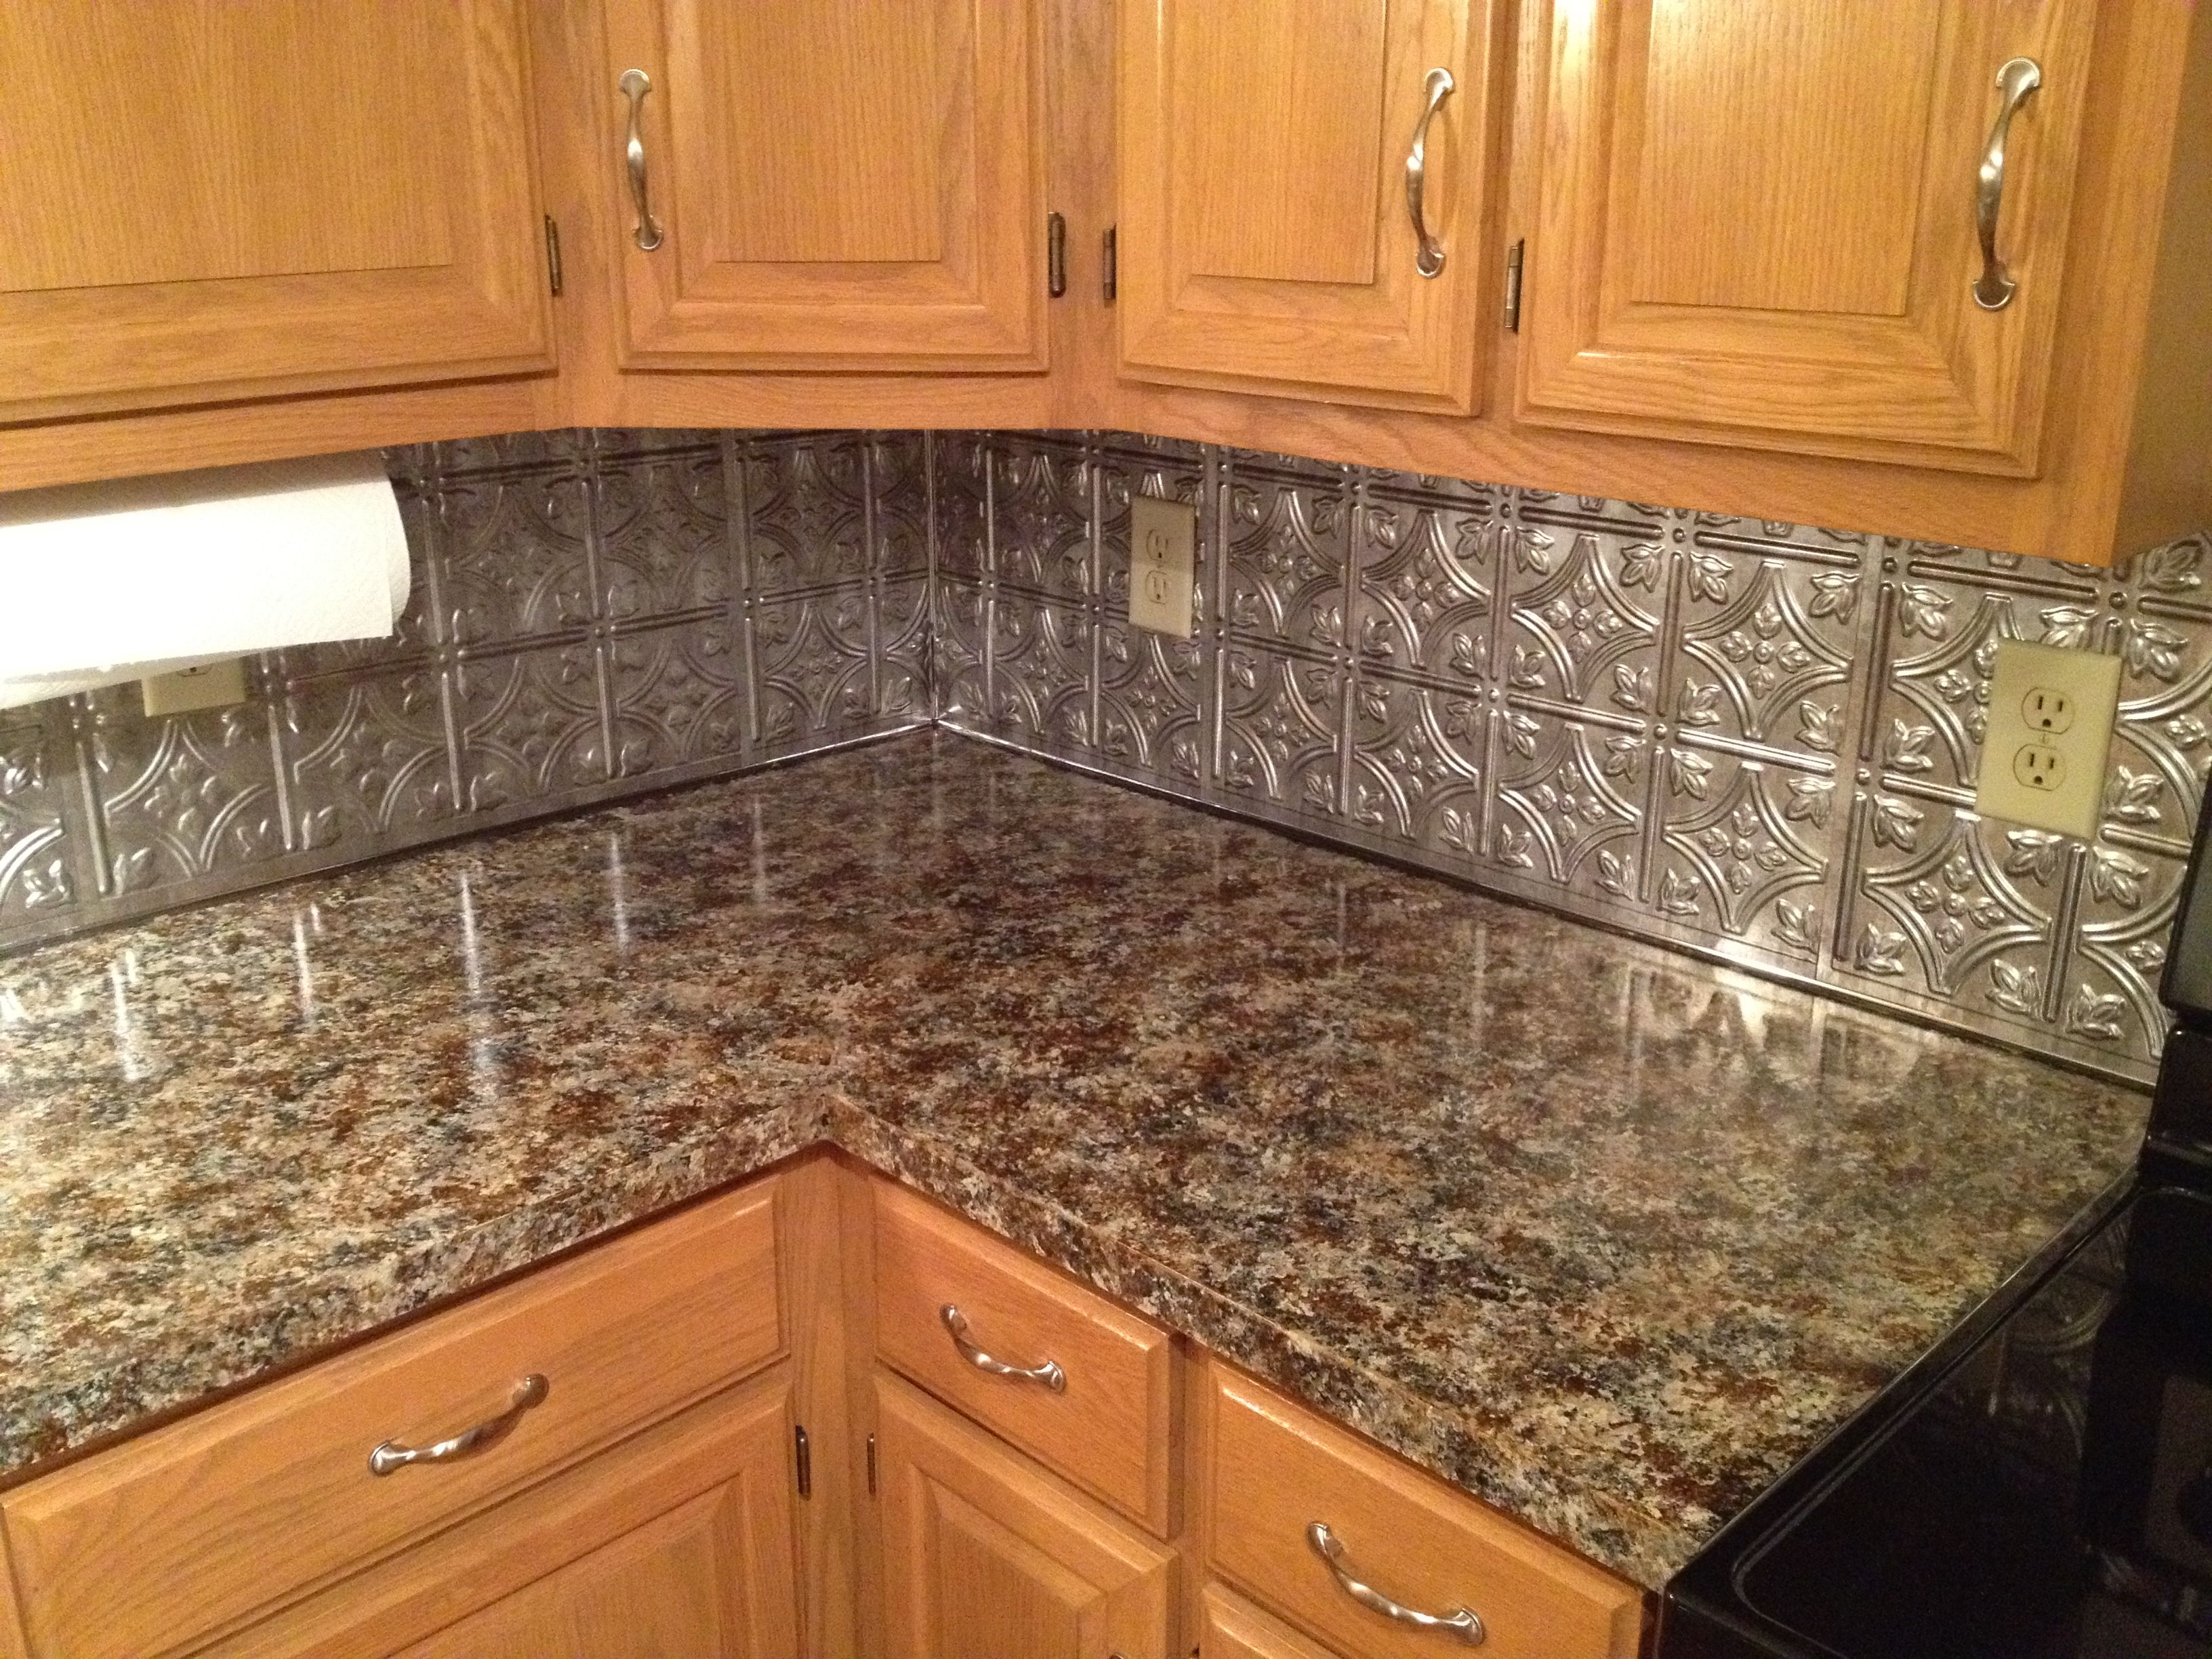 Kitchen counter top back splash make over for under 300 for Lowes countertops